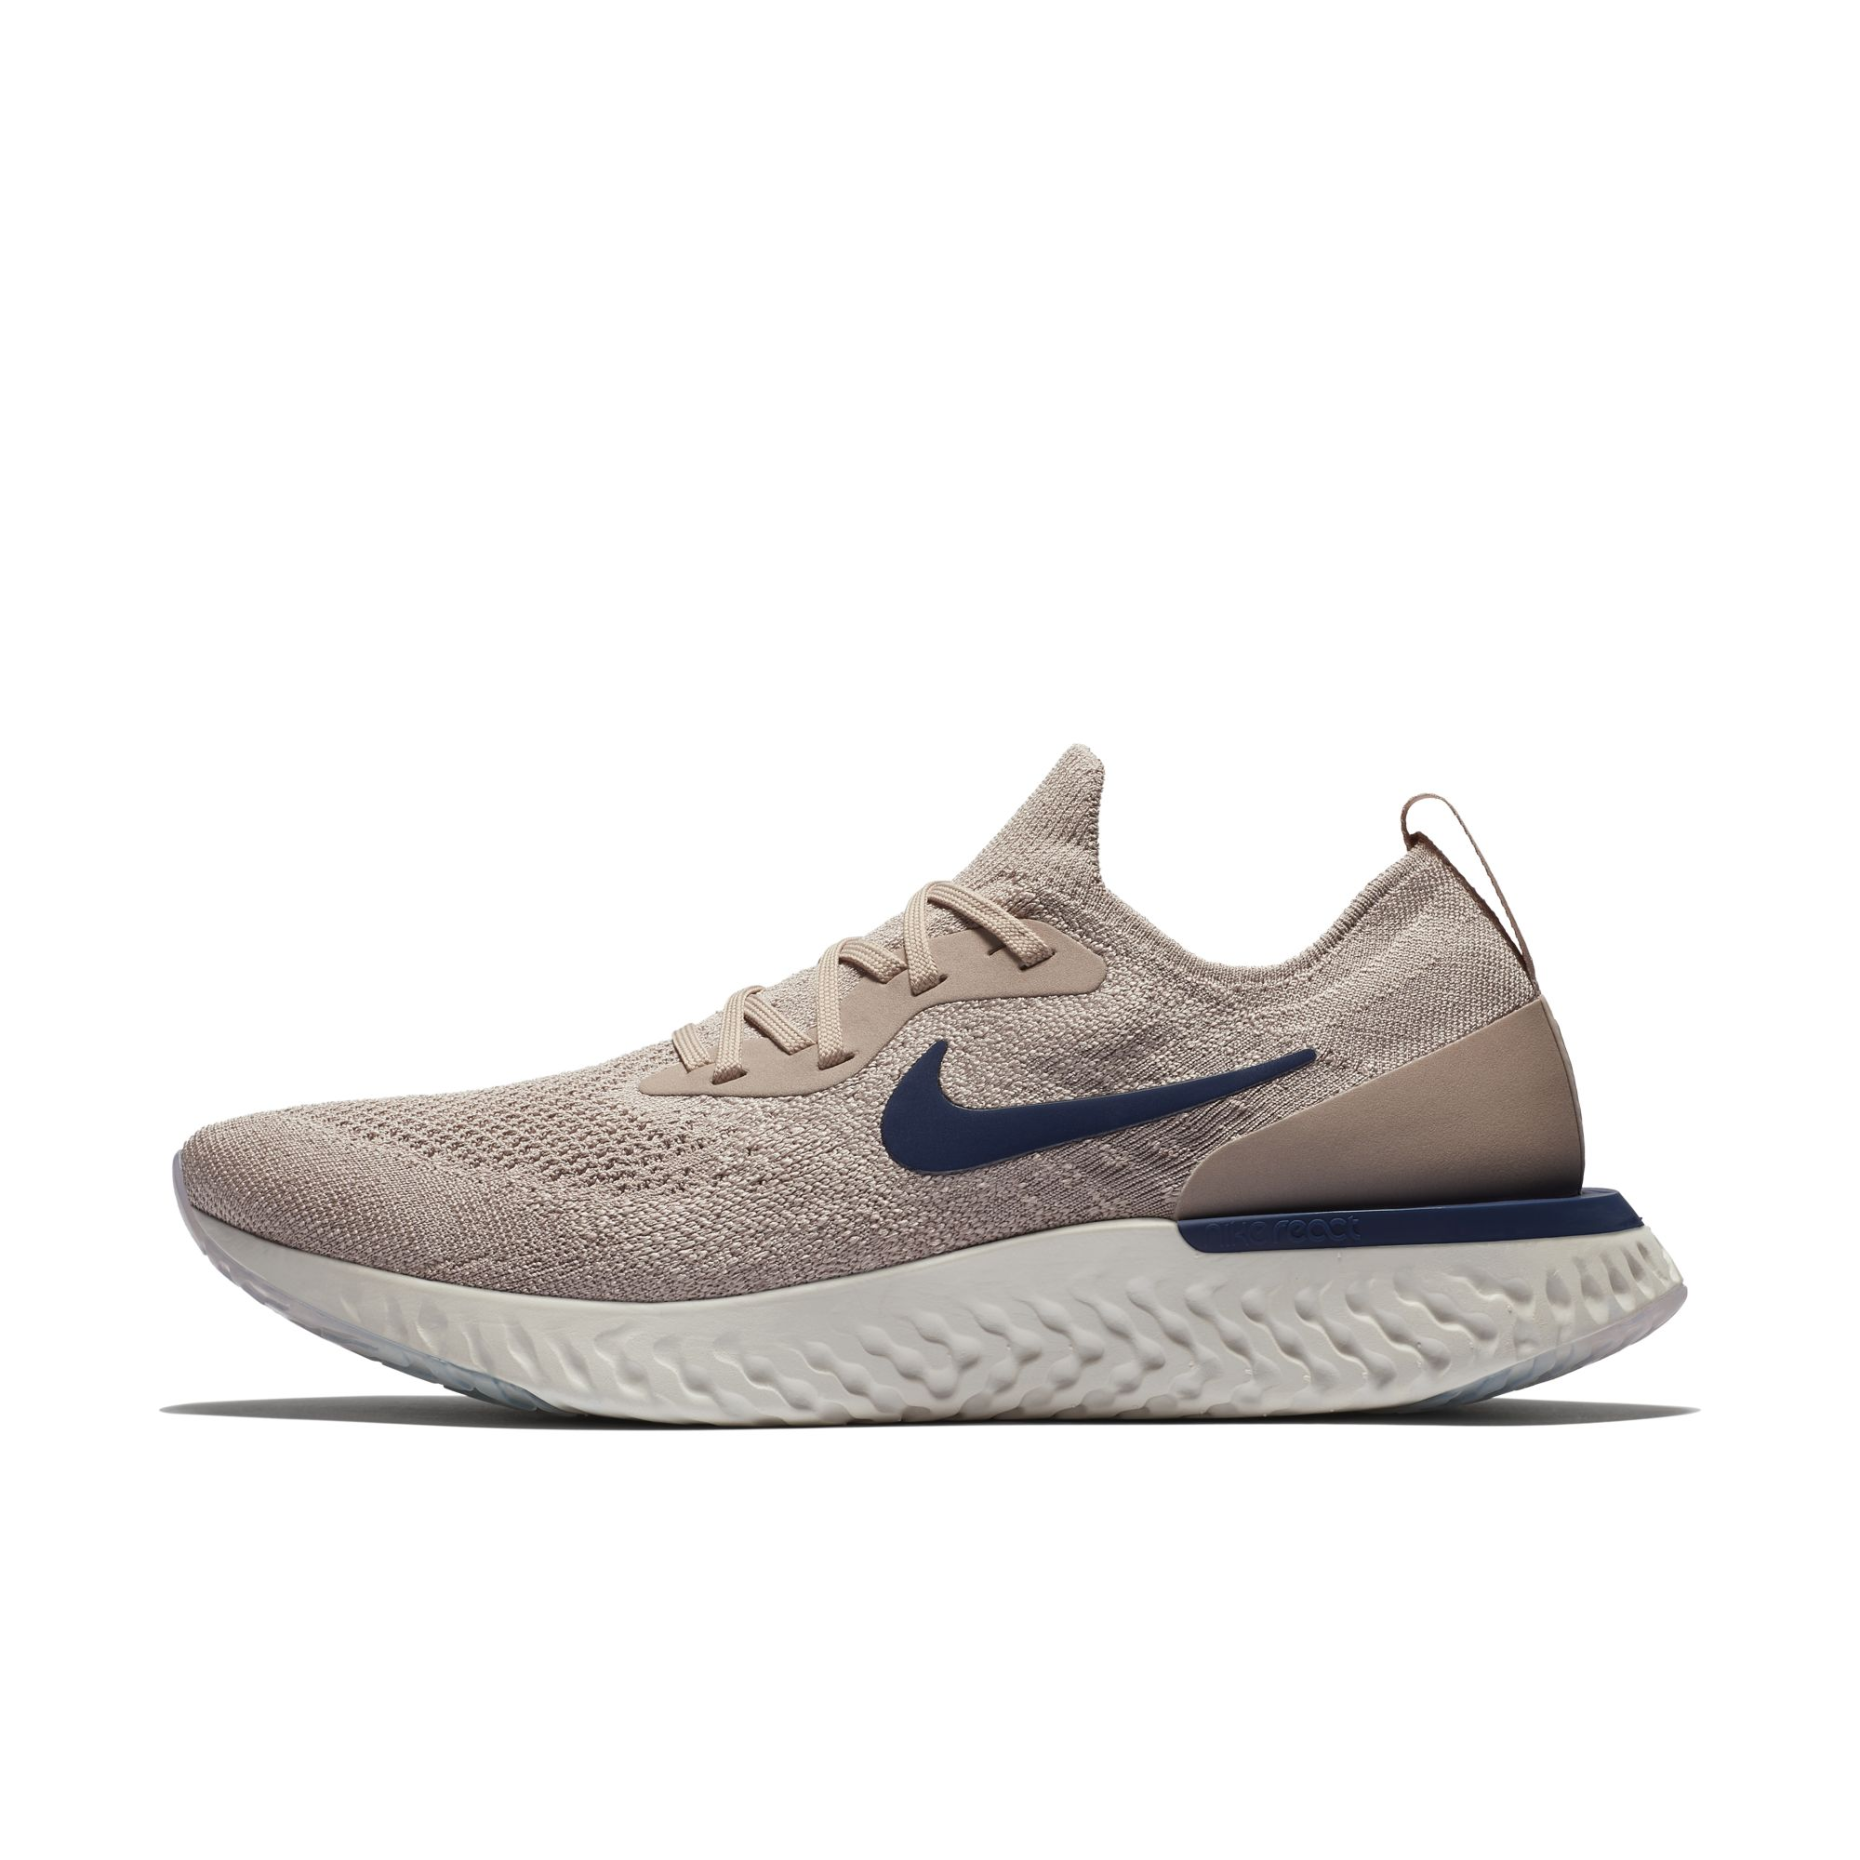 5ef8a3ca3a0 Nike Epic React Flyknit Diffused Taupe Blue AQ0067-201 1.png v 1535027347